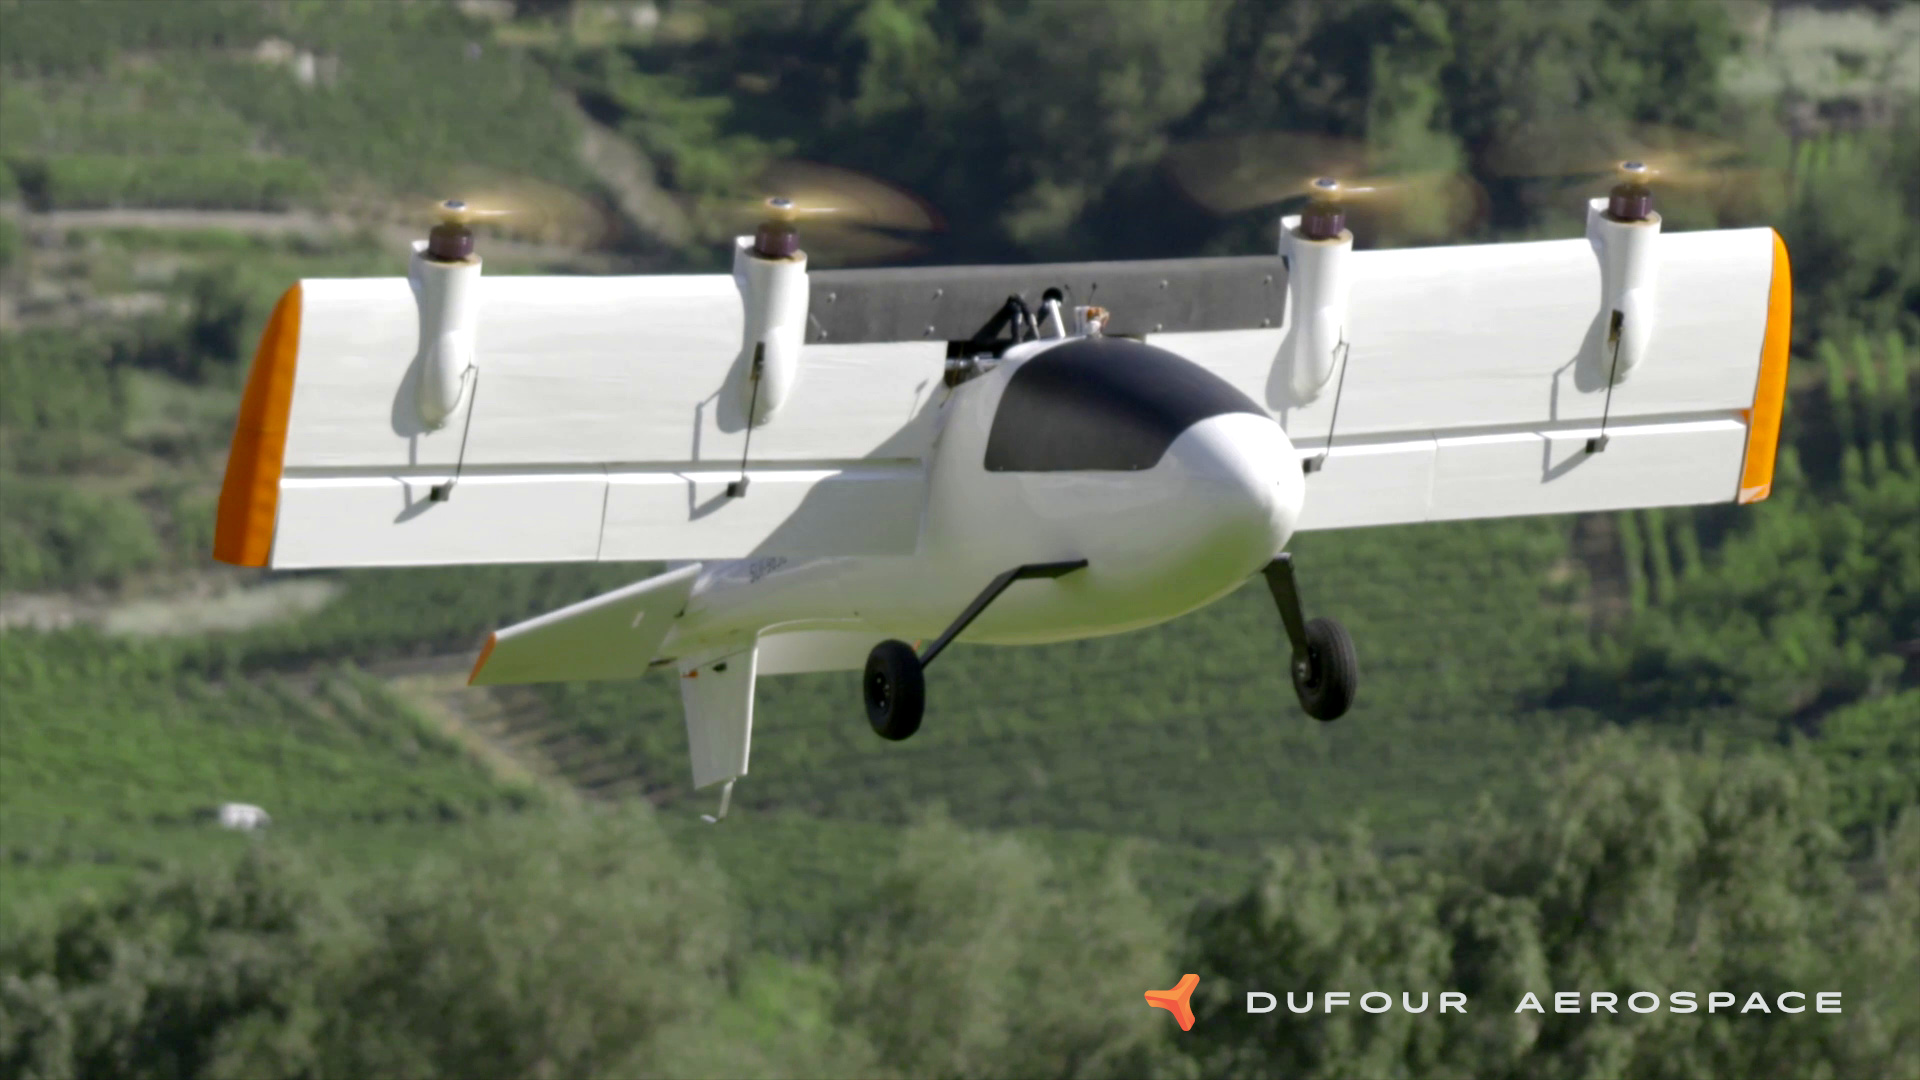 Dufour Completes Subscale Flight Testing